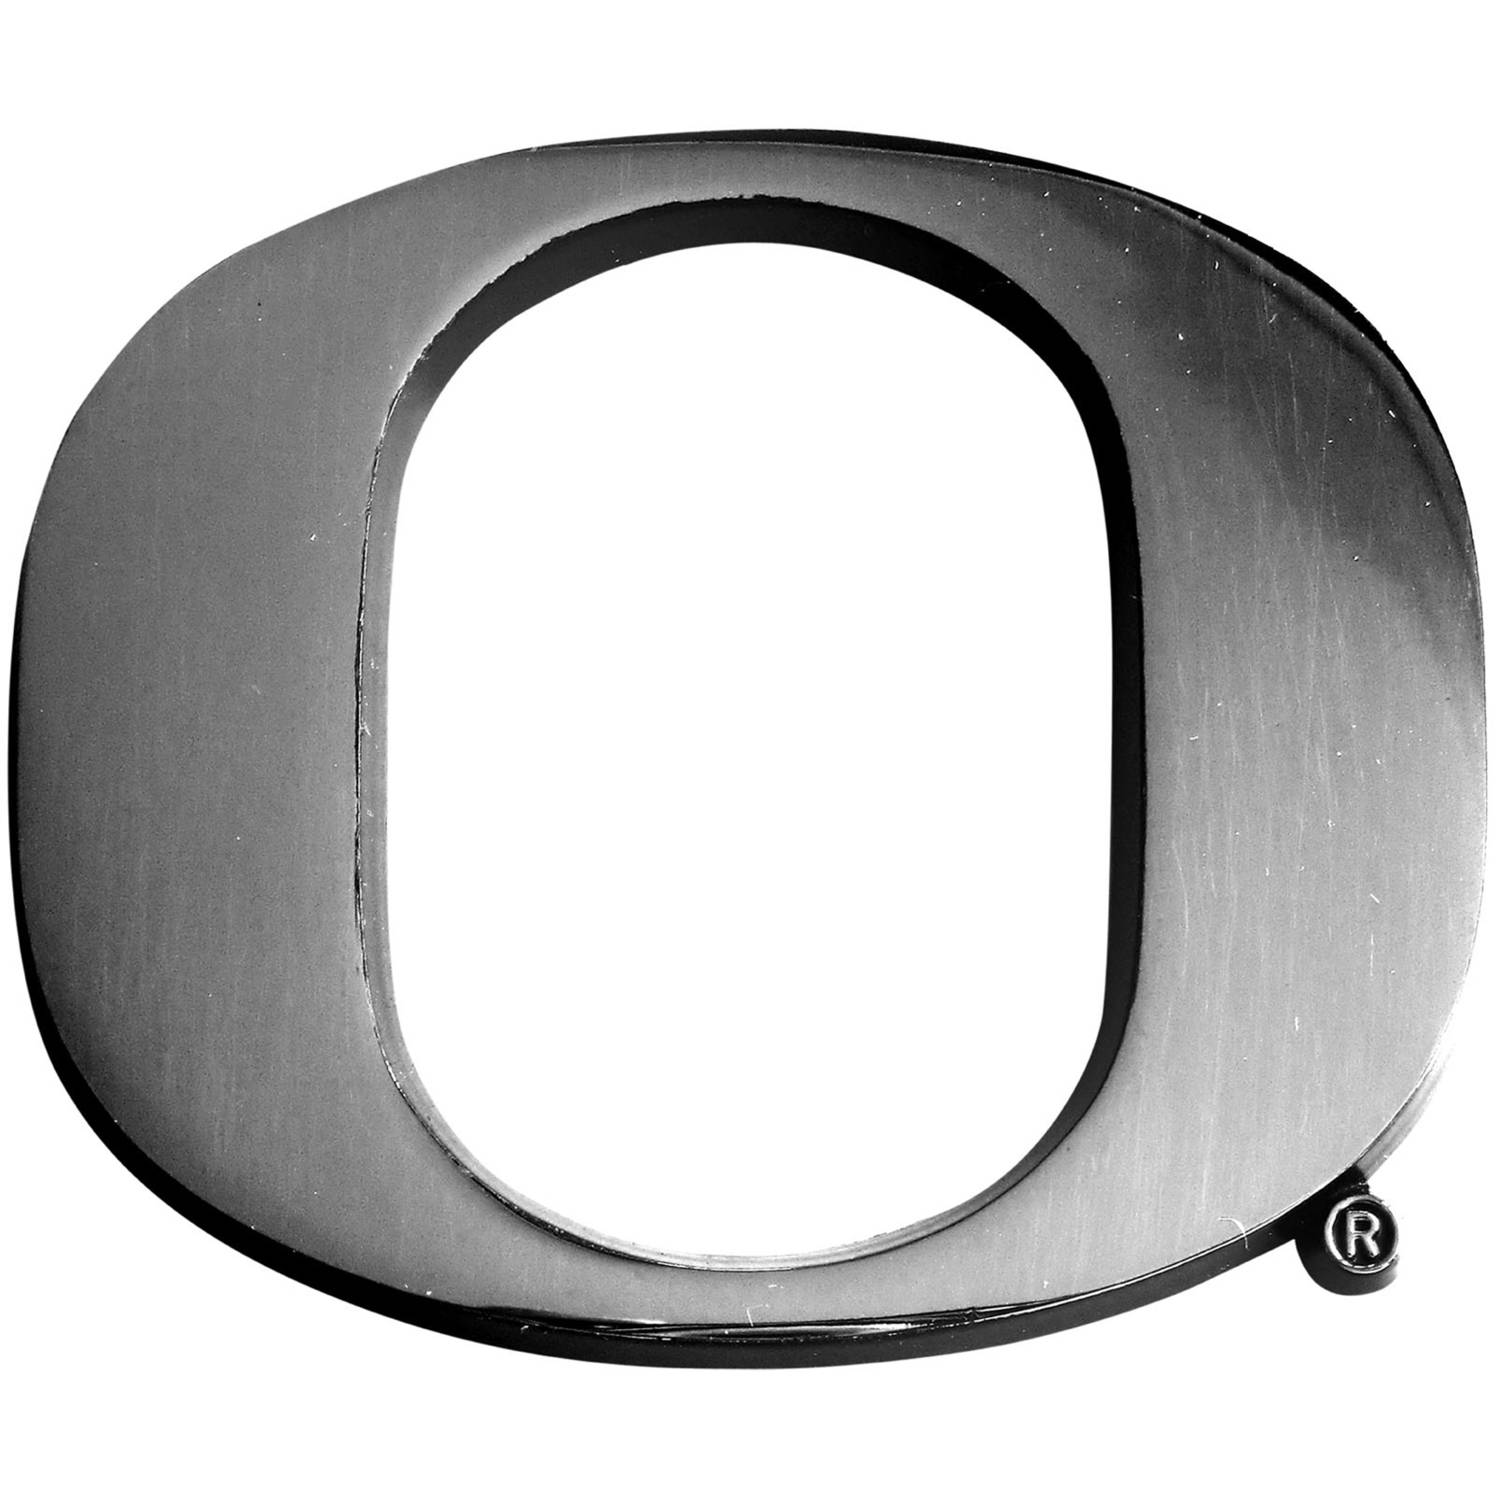 University of Oregon Emblem